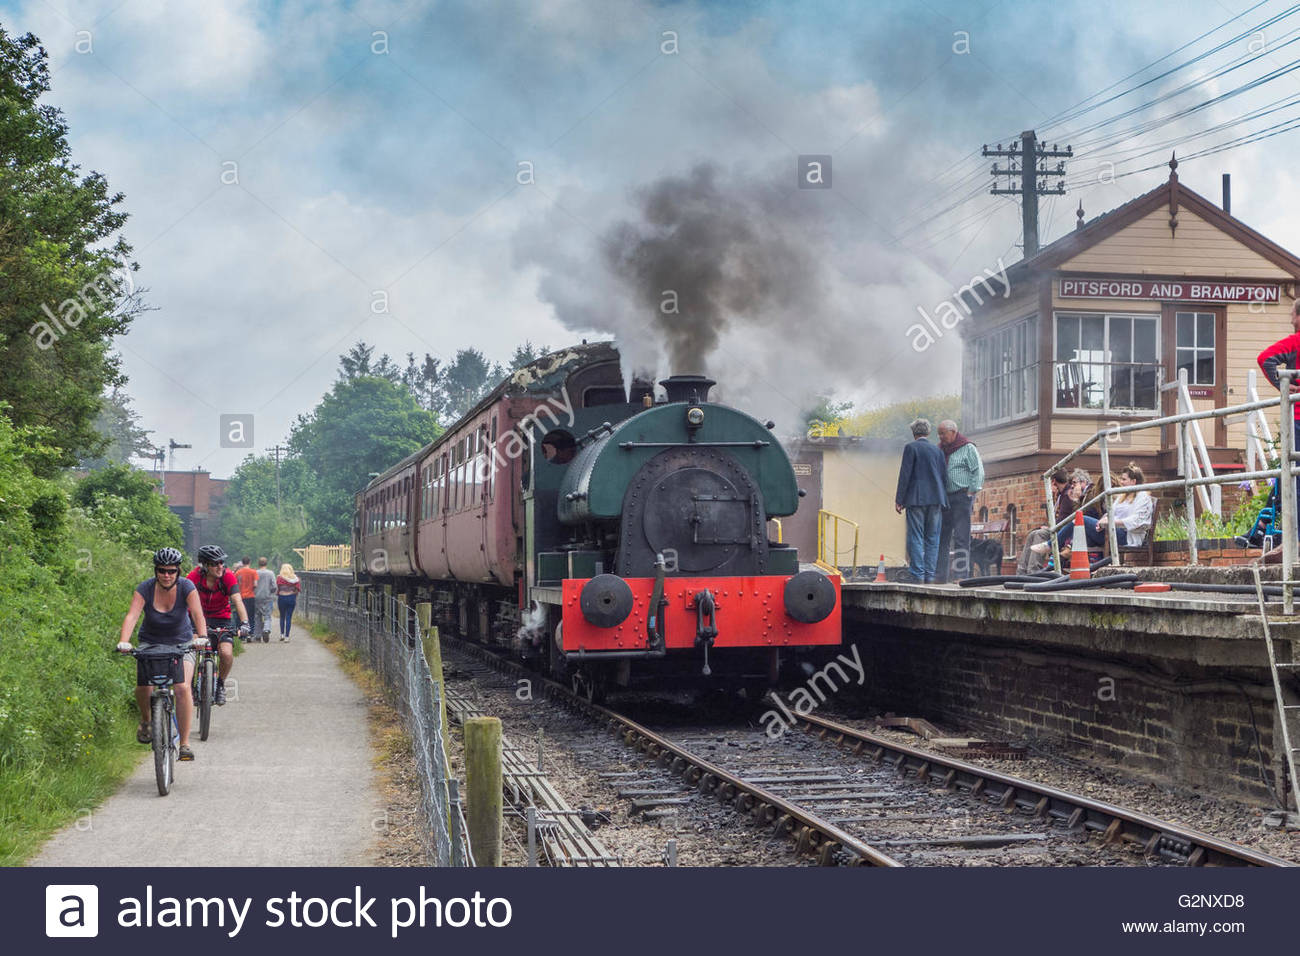 A train in the Pitsford and Brampton station on the Northampton and Lamport preserved steam railway as cyclist pass - Stock Image